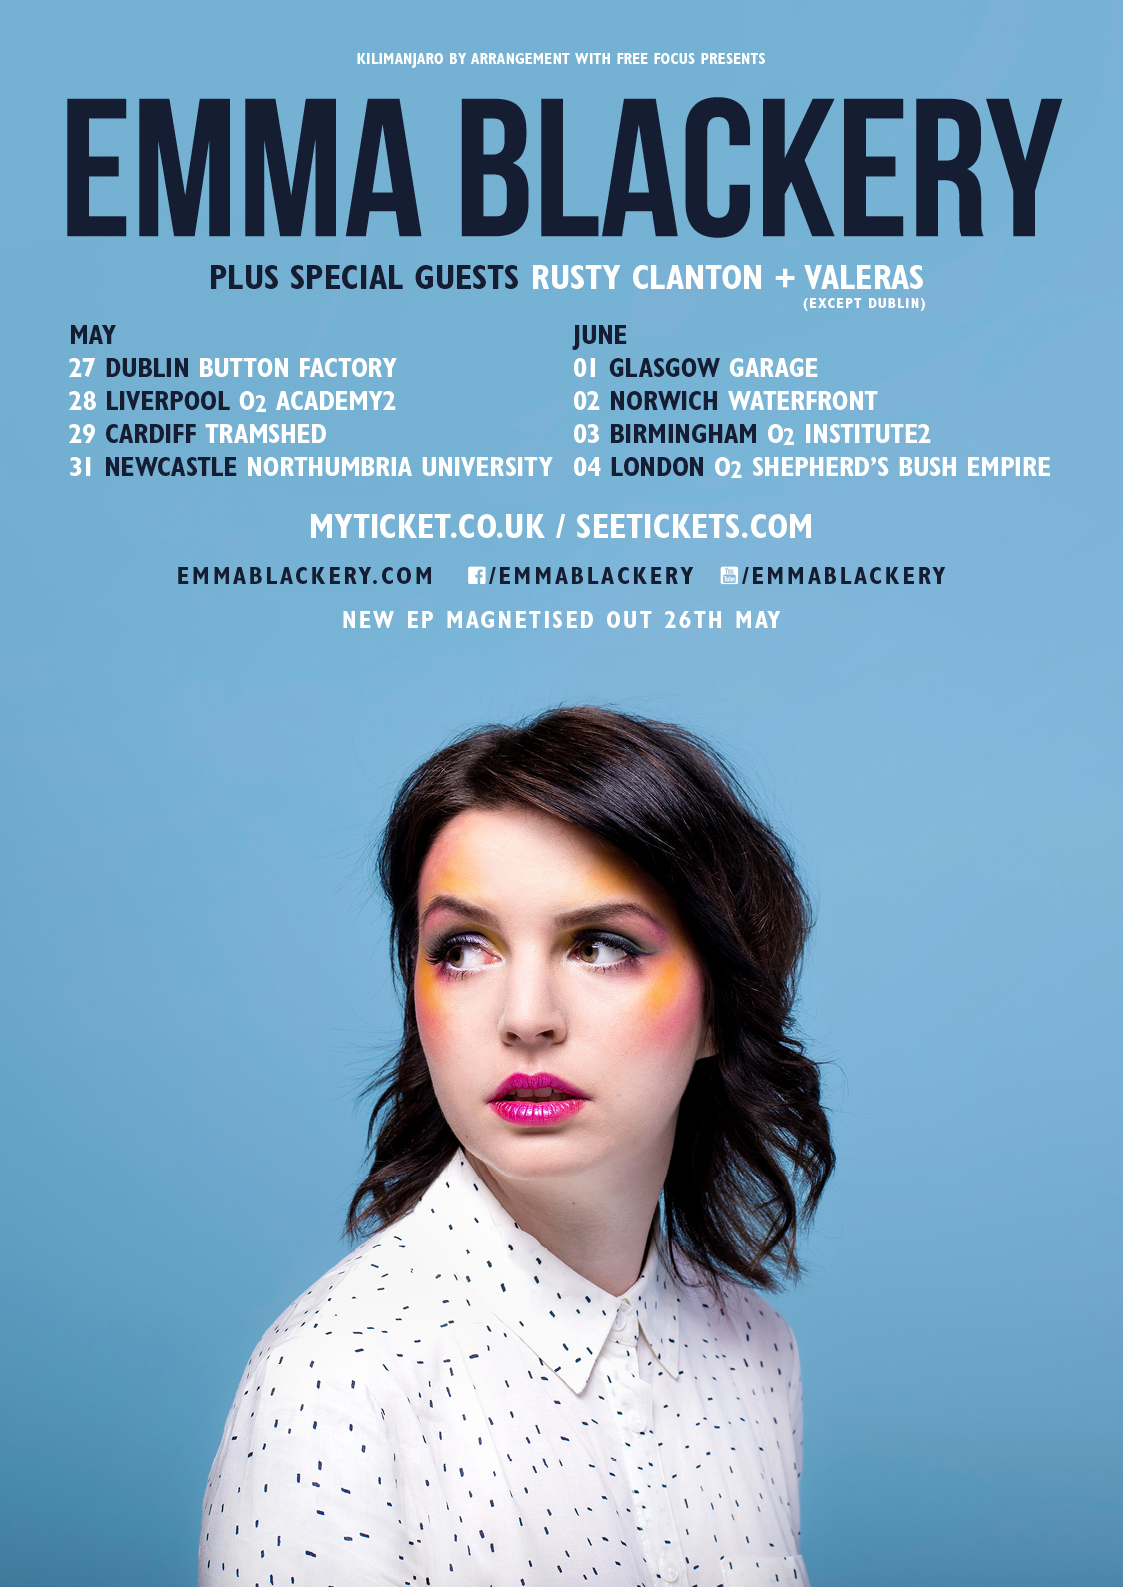 Emma Blackery Tour 2017